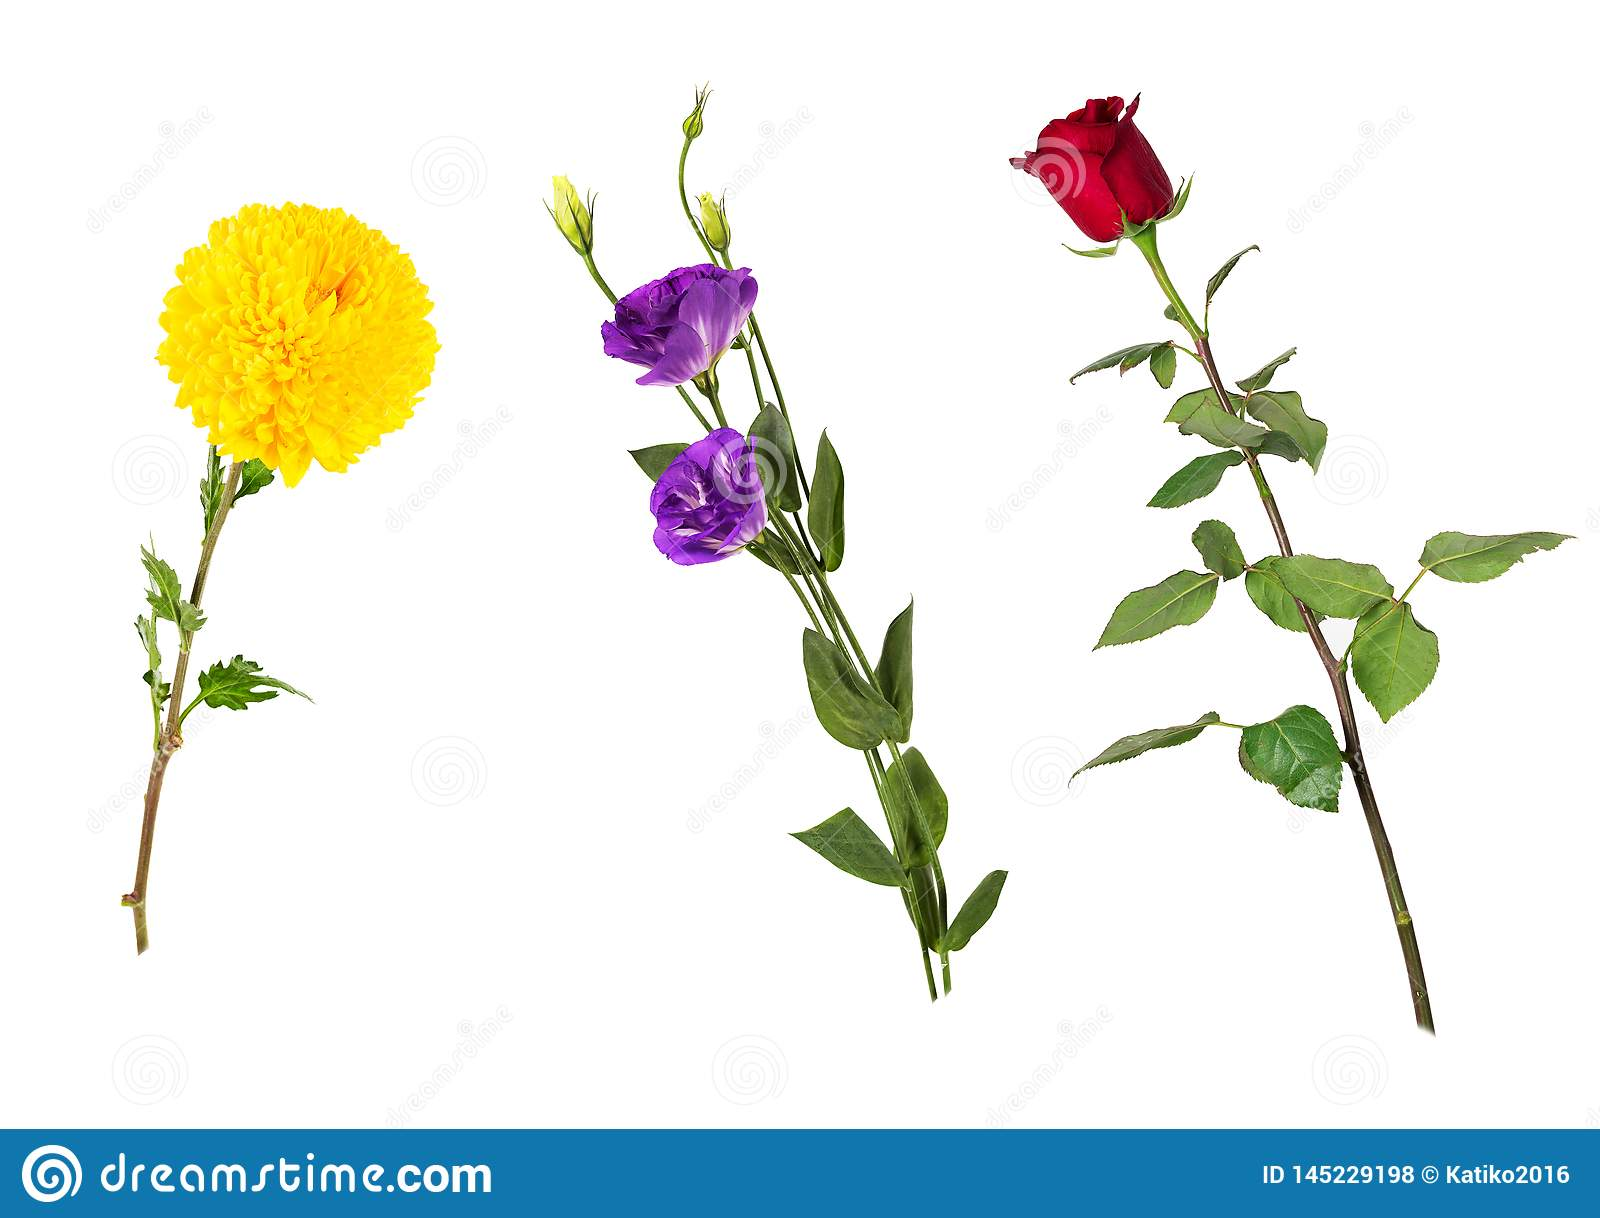 Beautiful floral set vivid red rose, bright yellow chrysanthemum, purple eustoma on stems with green leaves